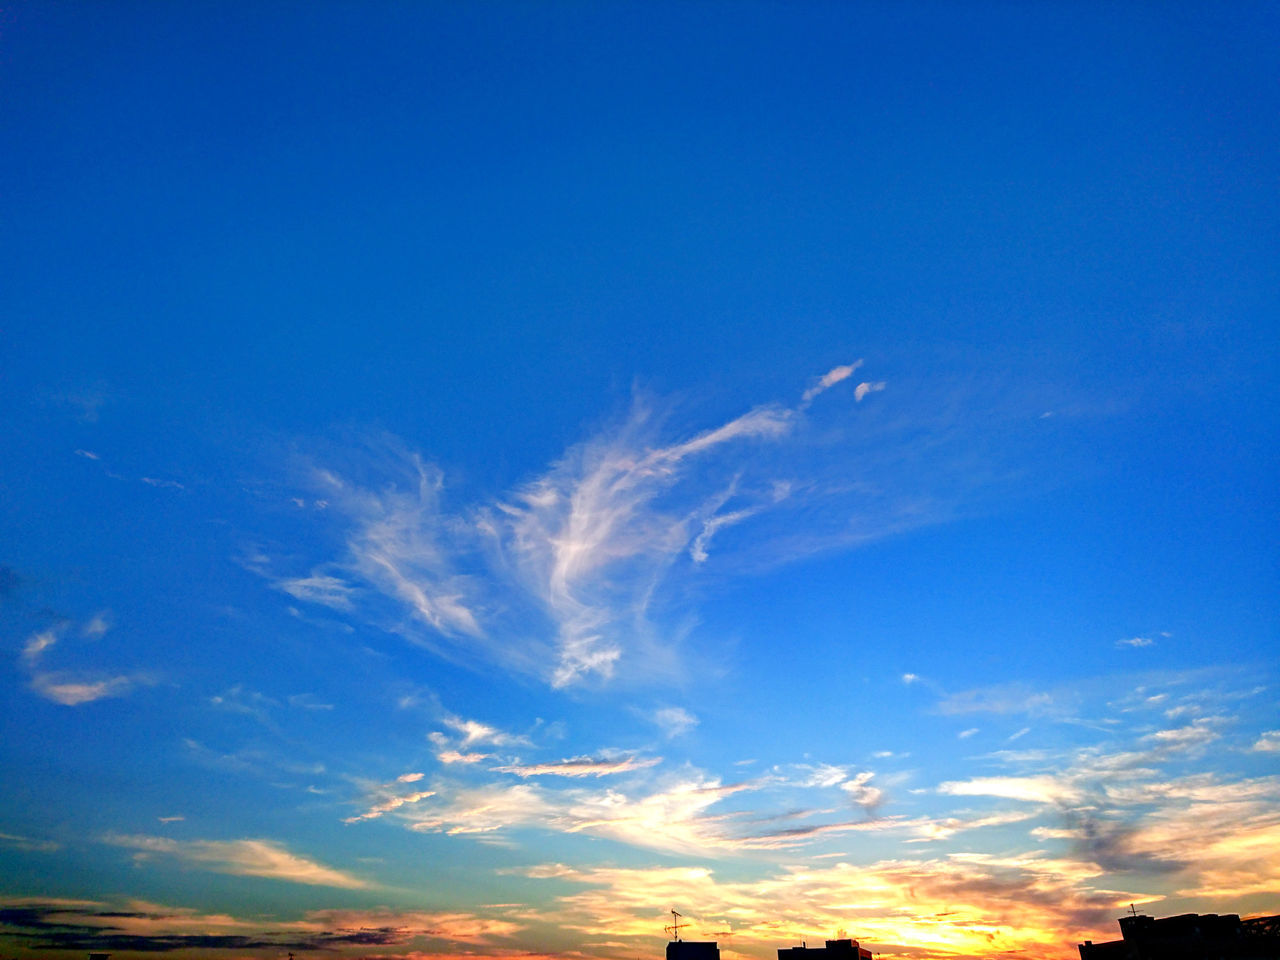 blue, sky, beauty in nature, nature, scenics, tranquil scene, low angle view, cloud - sky, sky only, tranquility, no people, outdoors, sunset, day